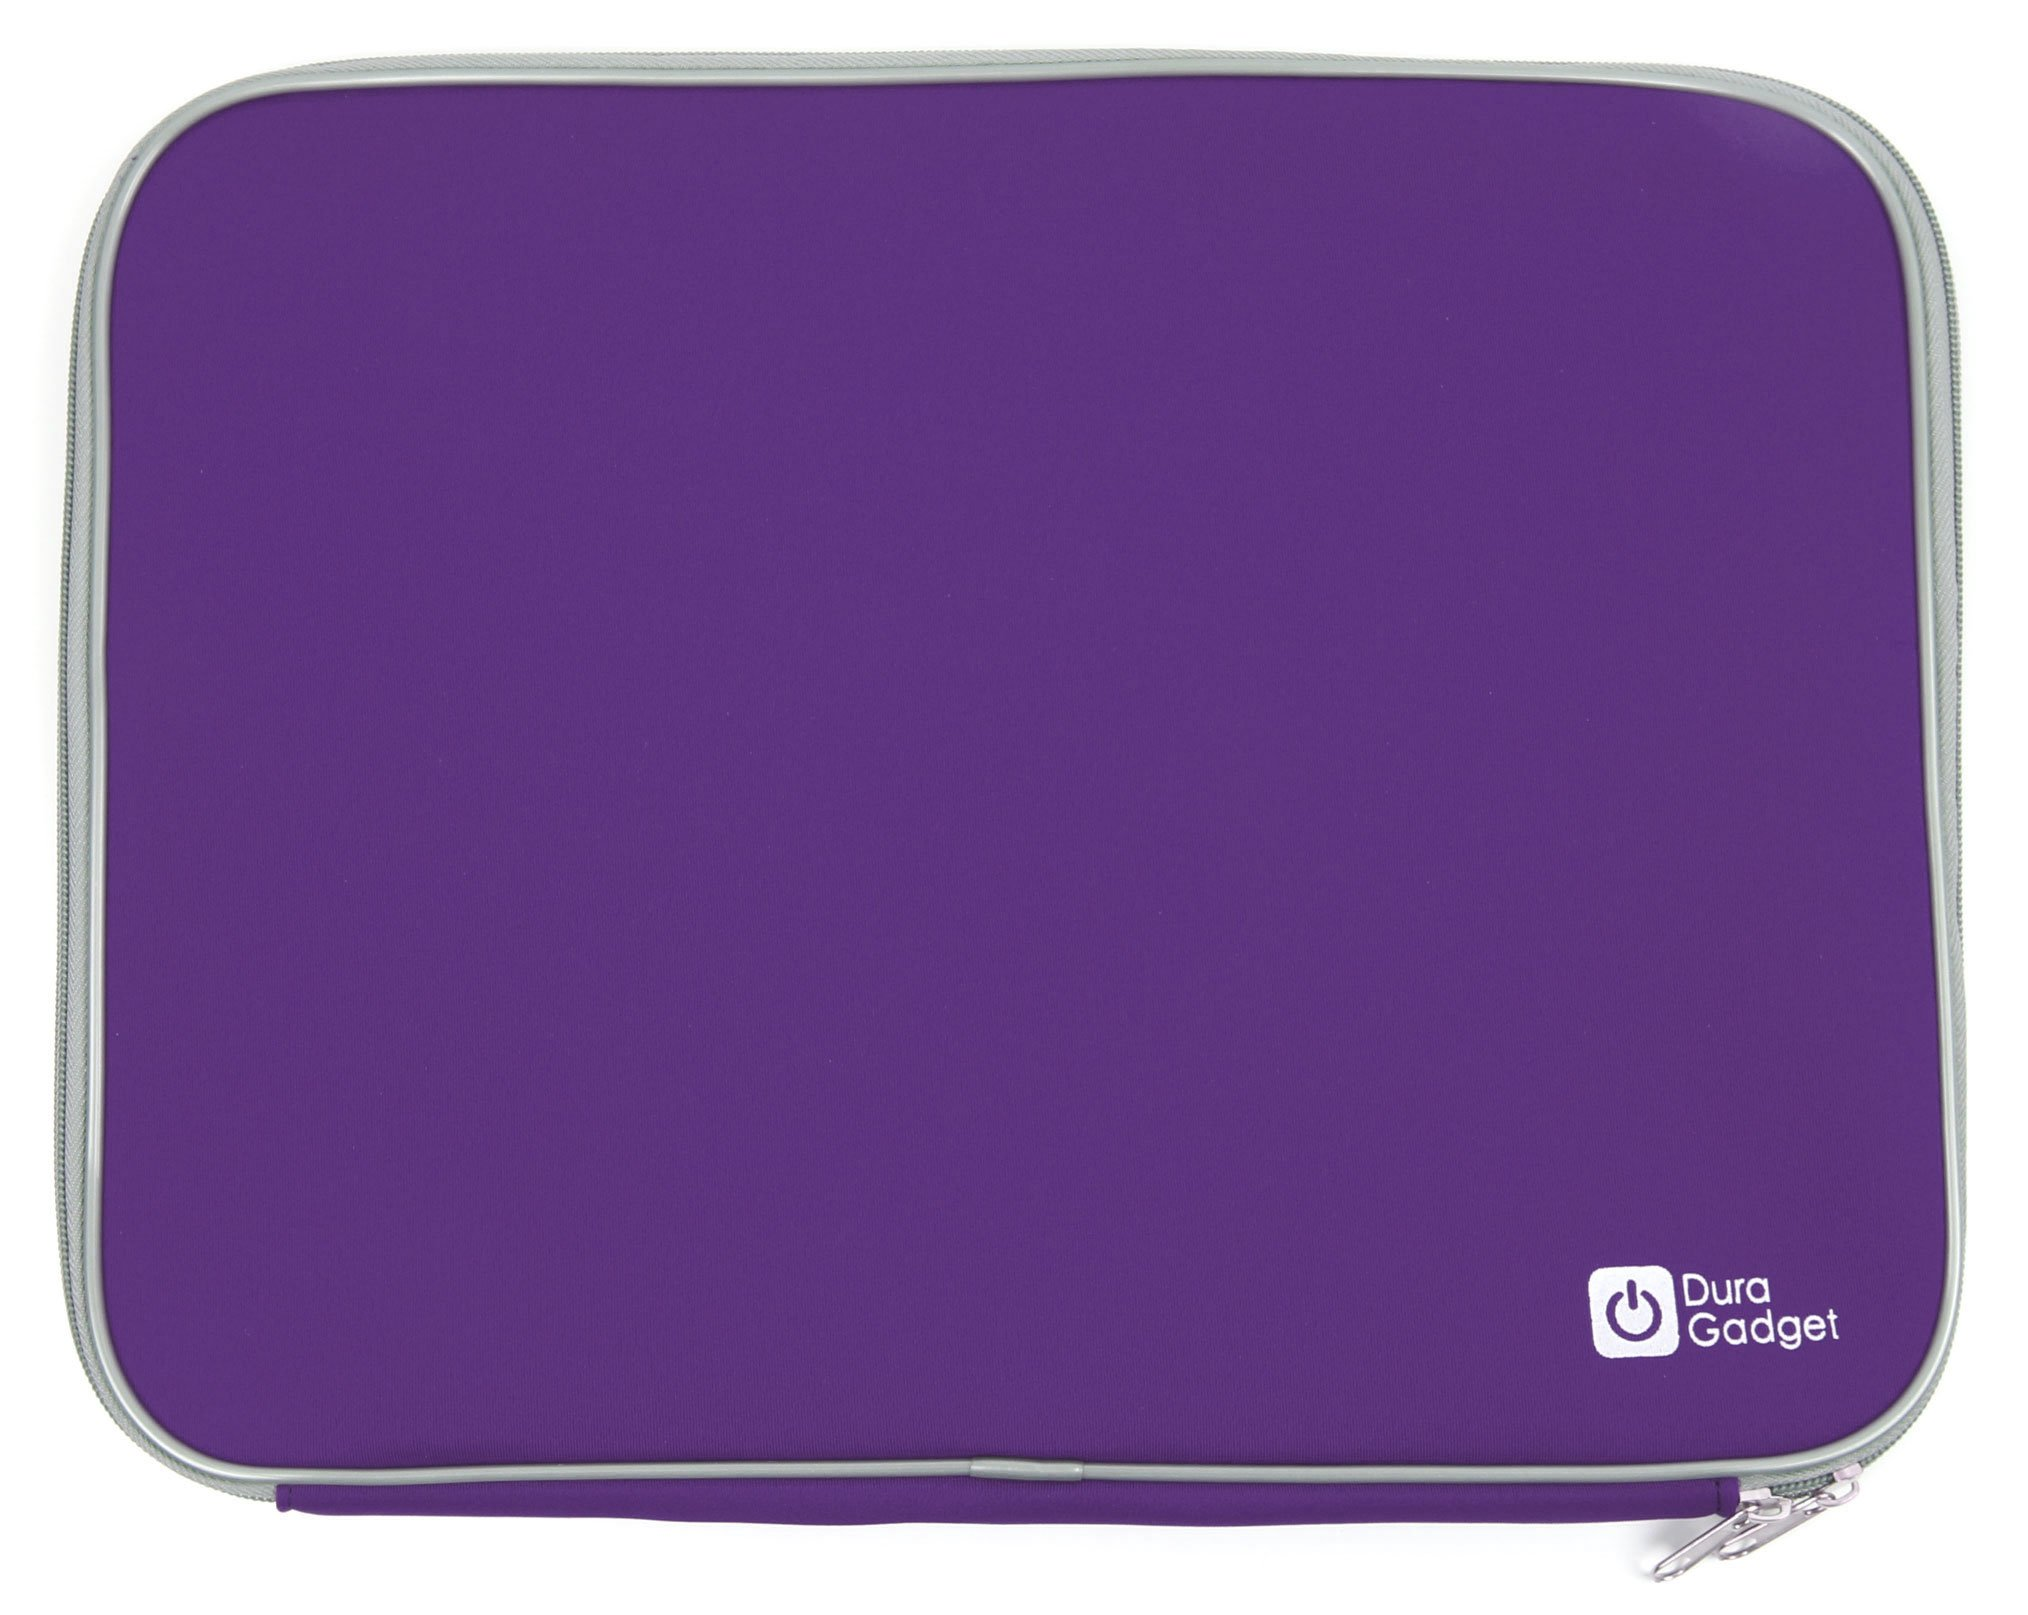 DURAGADGET Purple Travel Water Resistant & Shock Absorbent Neoprene Laptop Sleeve with Dual Zips Compatible with The Lenovo Ideapad 110 15'' | Ideapad 305 15.6'' Laptop by DURAGADGET (Image #6)